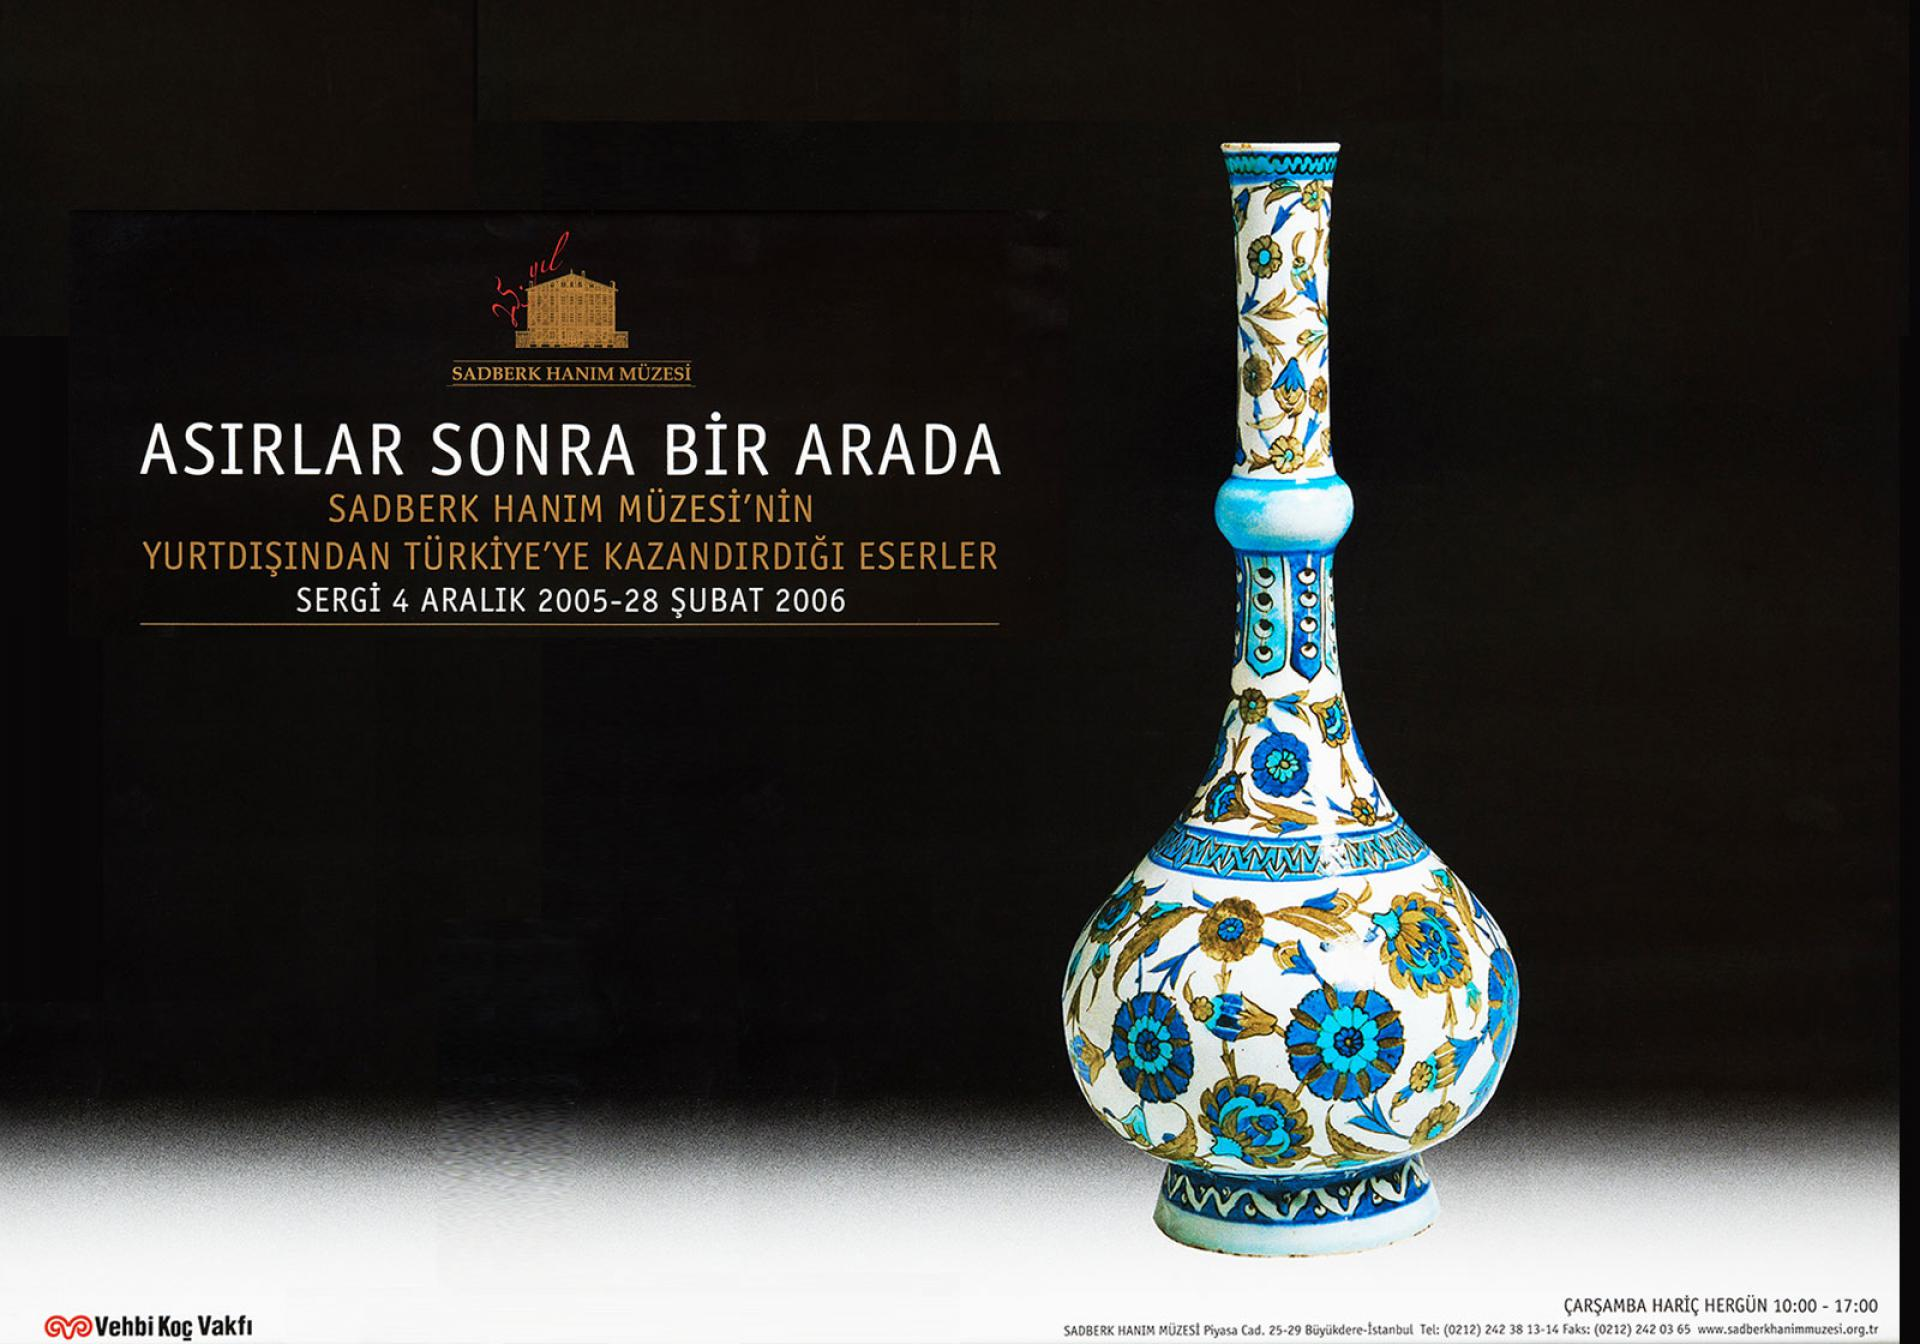 REUNITED AFTER CENTURIES Works of Art Restored to Turkey by Sadberk Hanım Museum - EXHIBITIONS - Sadberk Hanım Museum